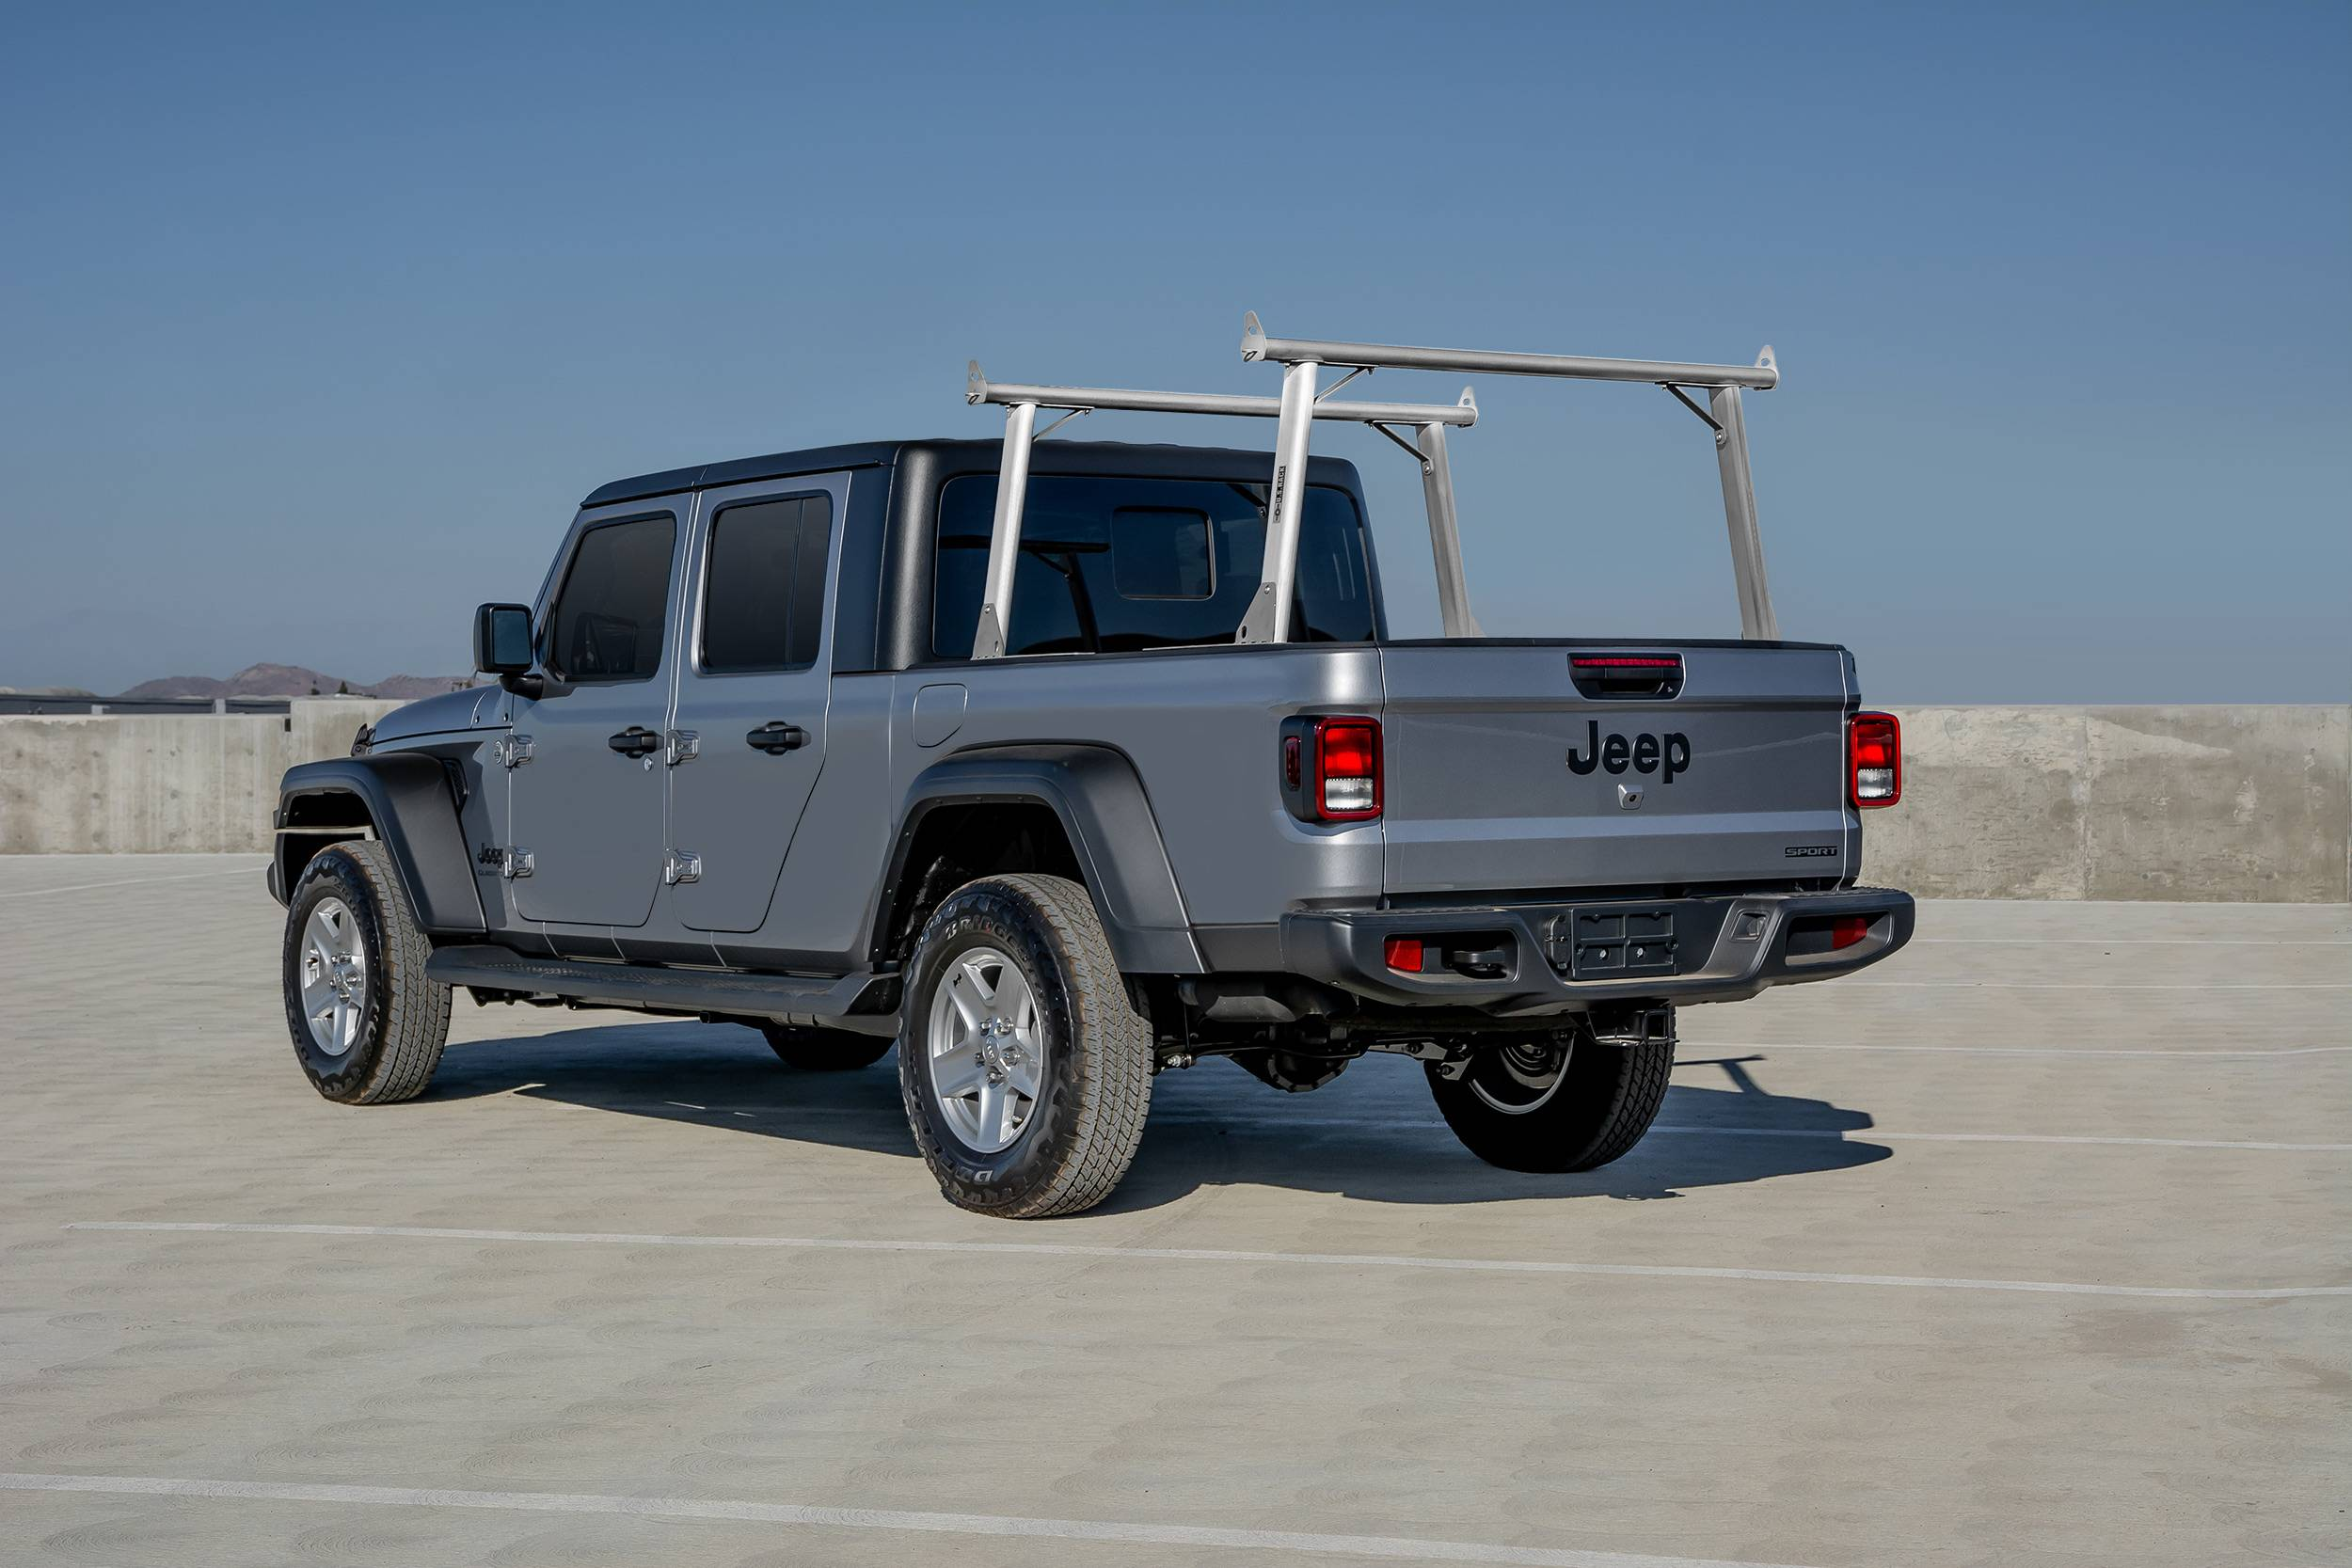 2020-2021 Jeep Gladiator Clipper Truck Rack, Fleetside, Track System, Above Cab Height, Brushed Cross Bar and Legs With Bead Blasted Base - PN #82240150